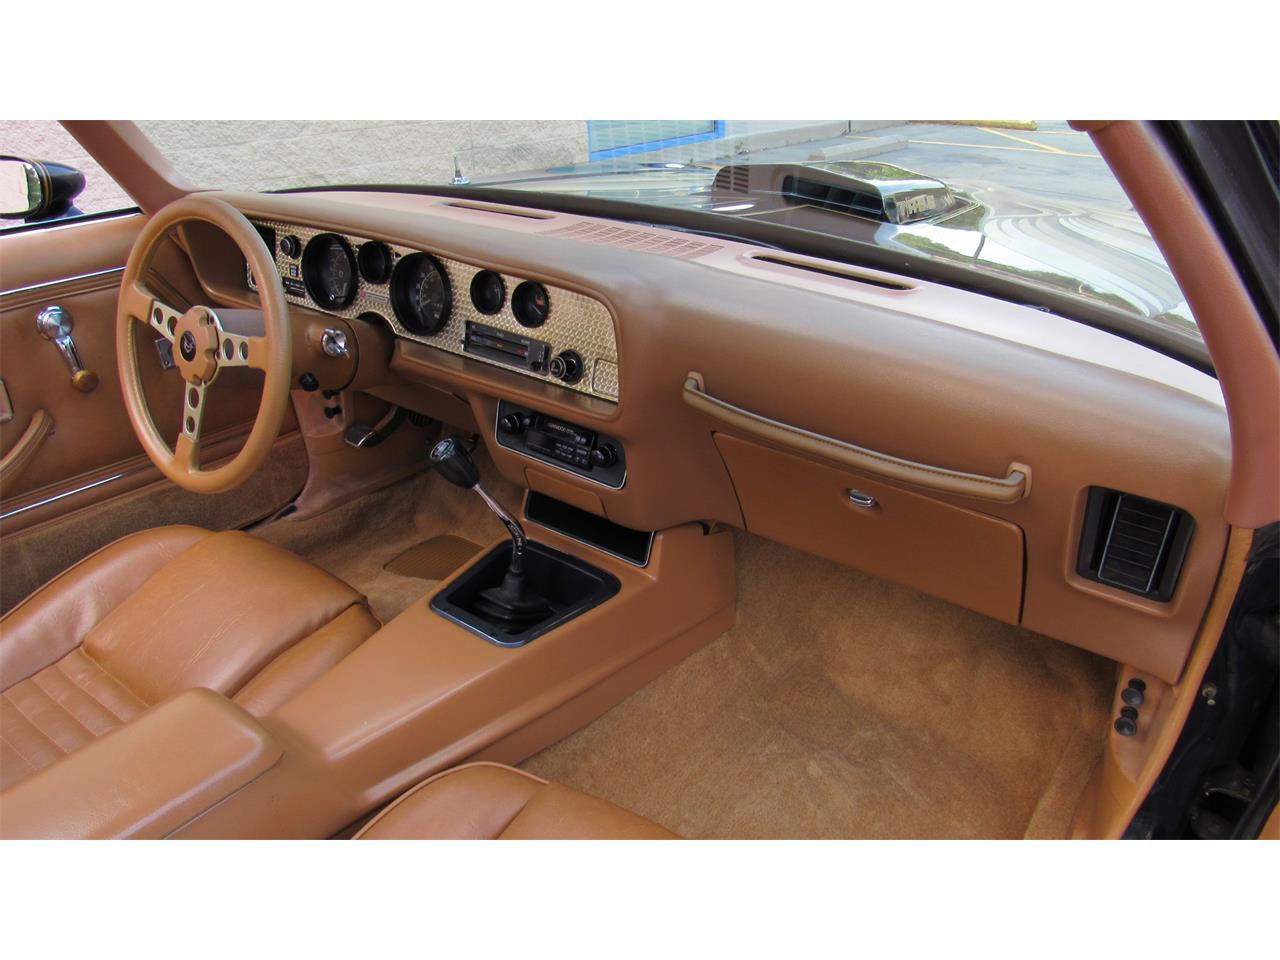 1979 Pontiac Firebird Trans Am for sale in Milford, OH – photo 44